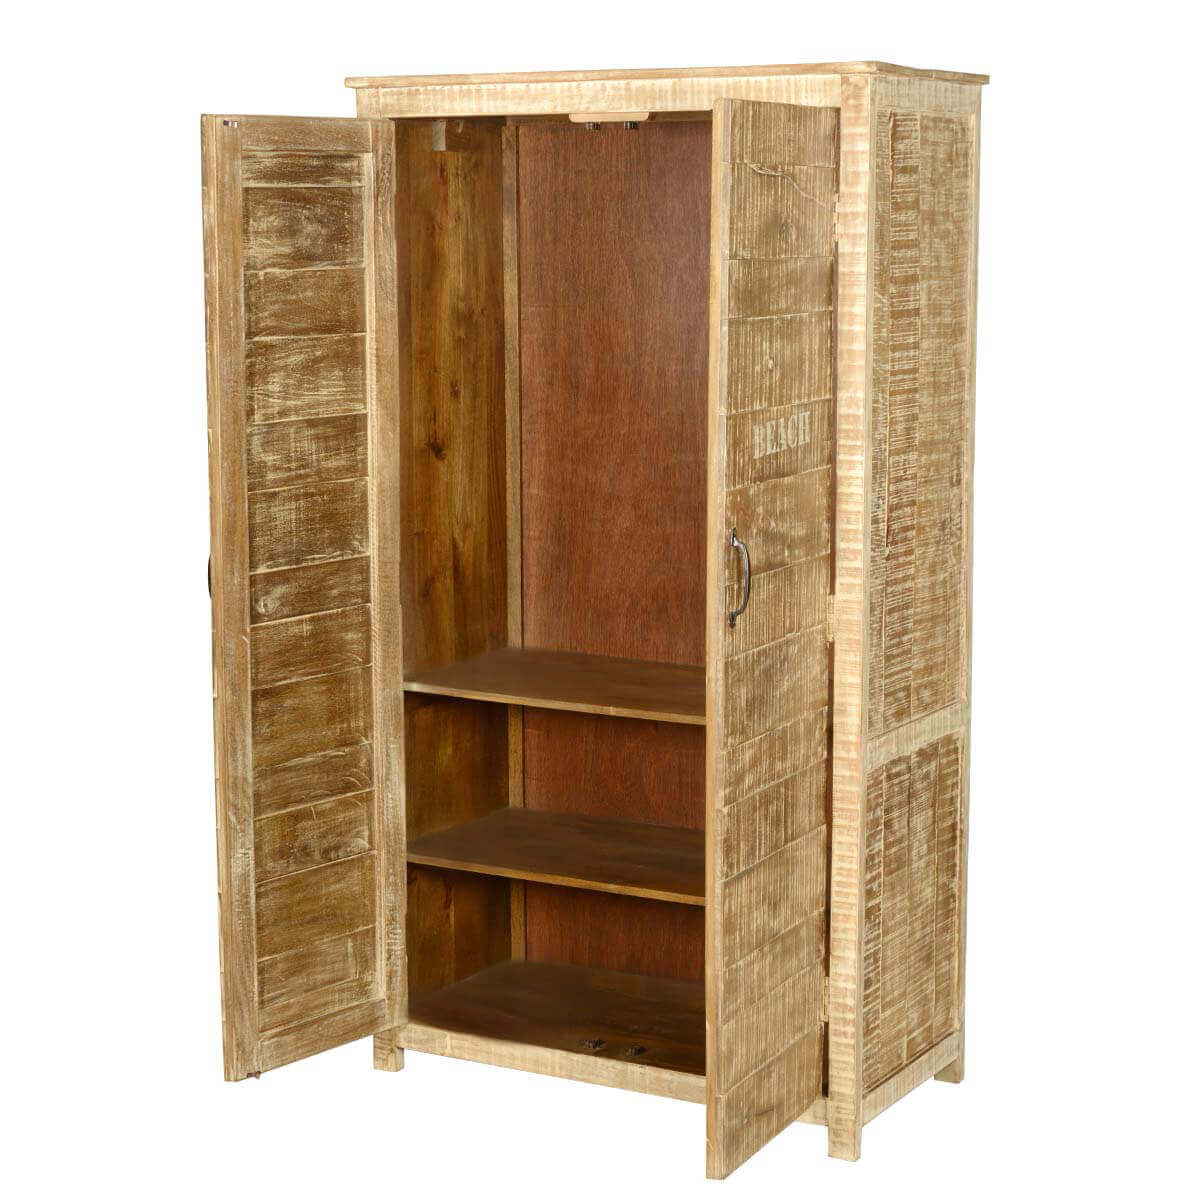 New orleans rustic distressed solid wood bedroom armoire